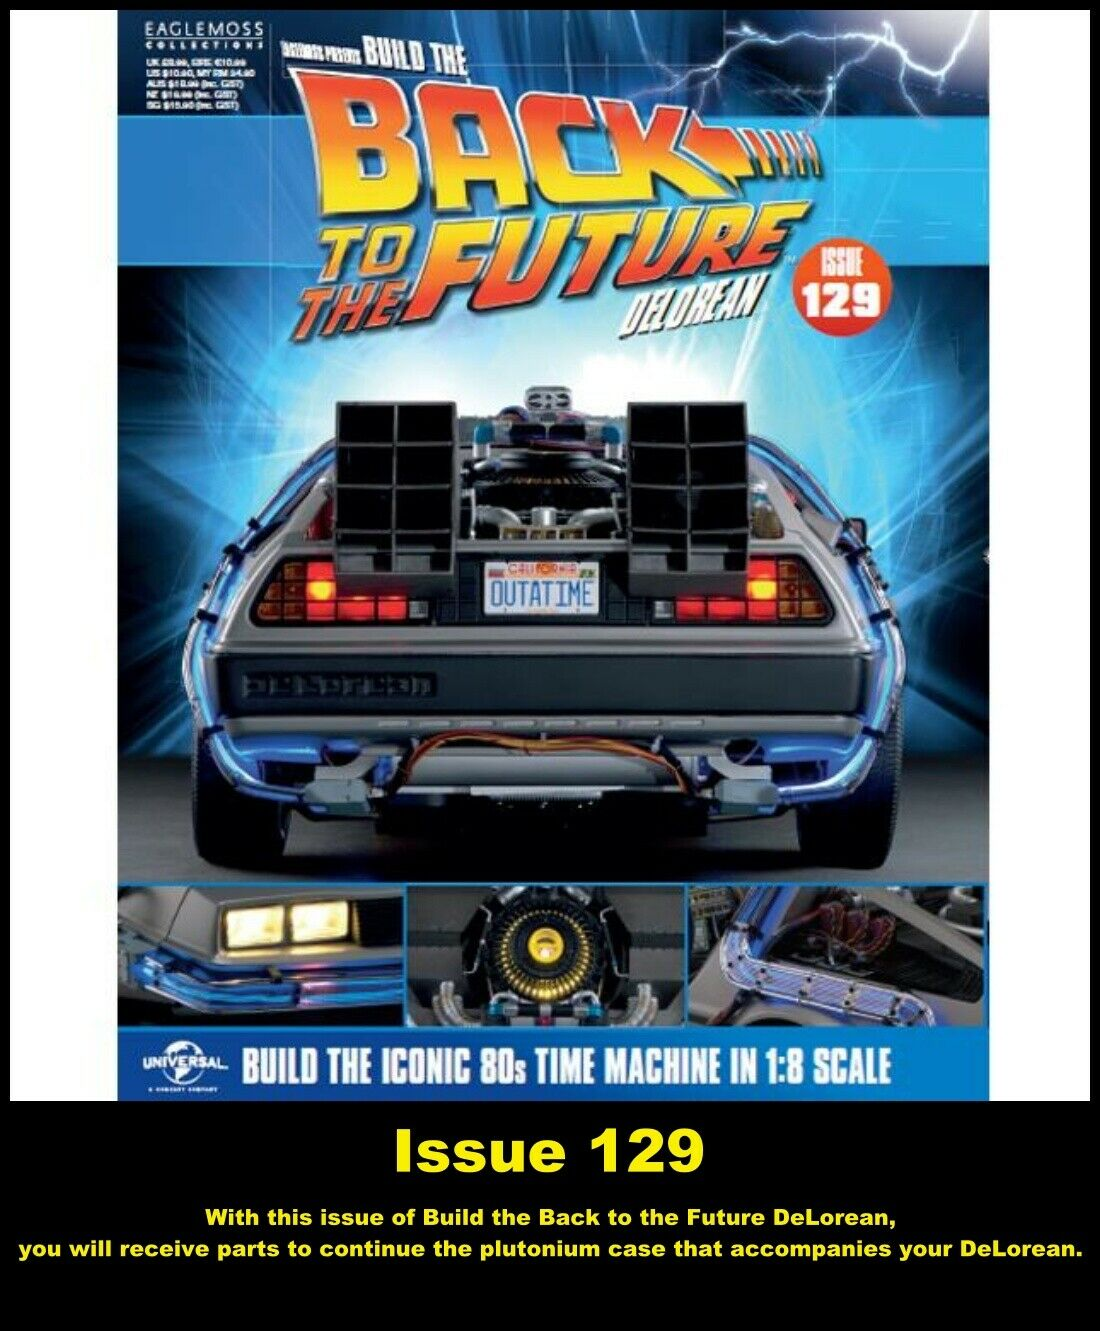 Issue 129